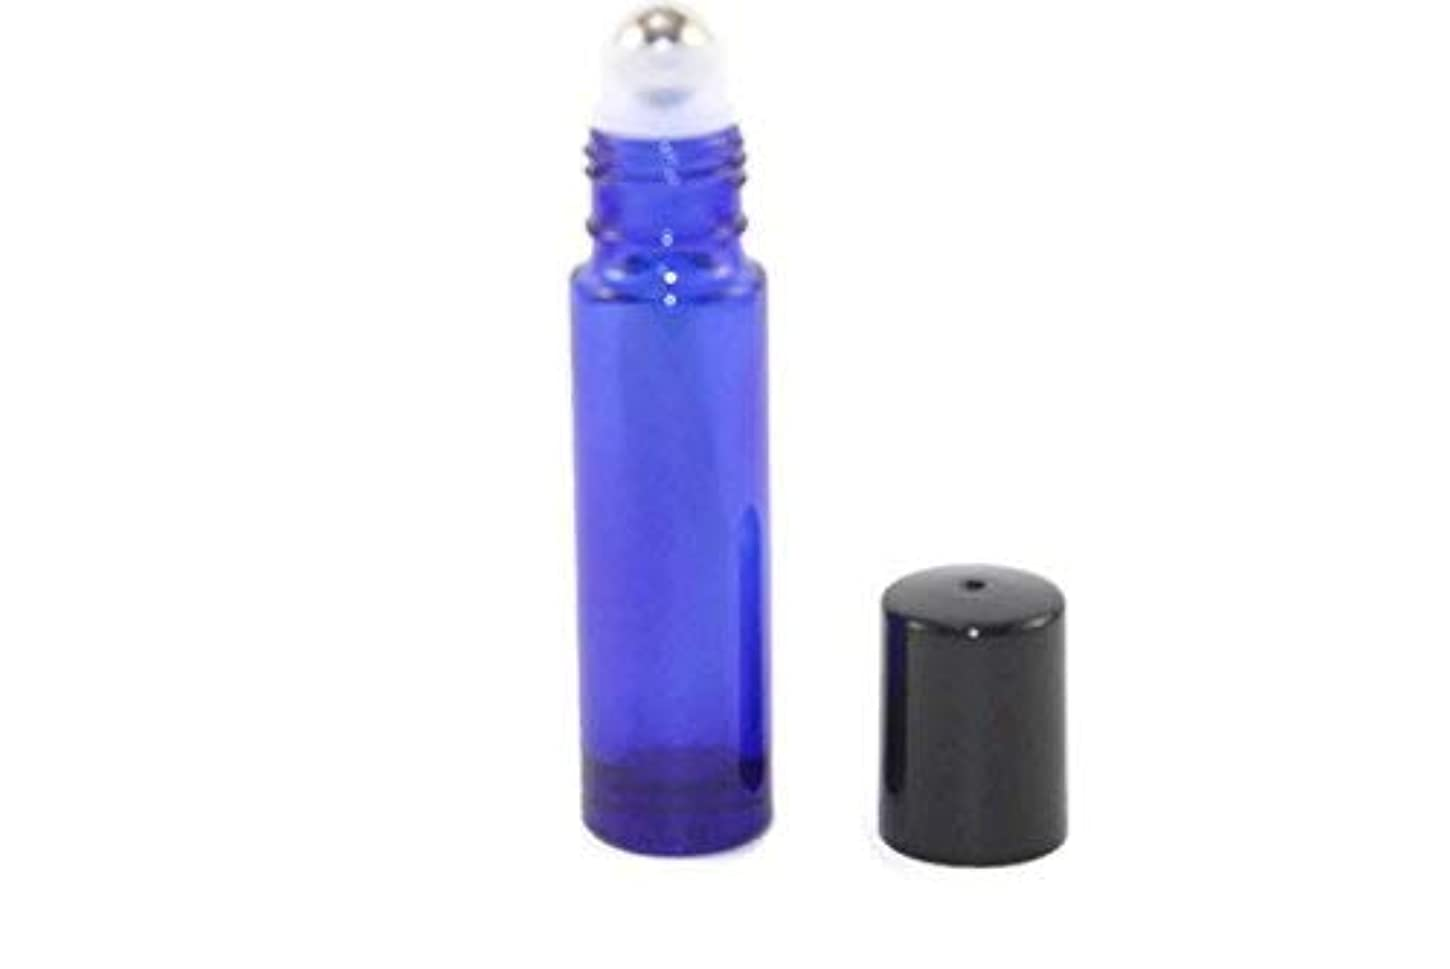 被害者郵便番号フォルダUSA 144-10ml COBALT BLUE Glass Roll On THICK Bottles (144) with Stainless Steel Roller Balls - Refillable Aromatherapy...